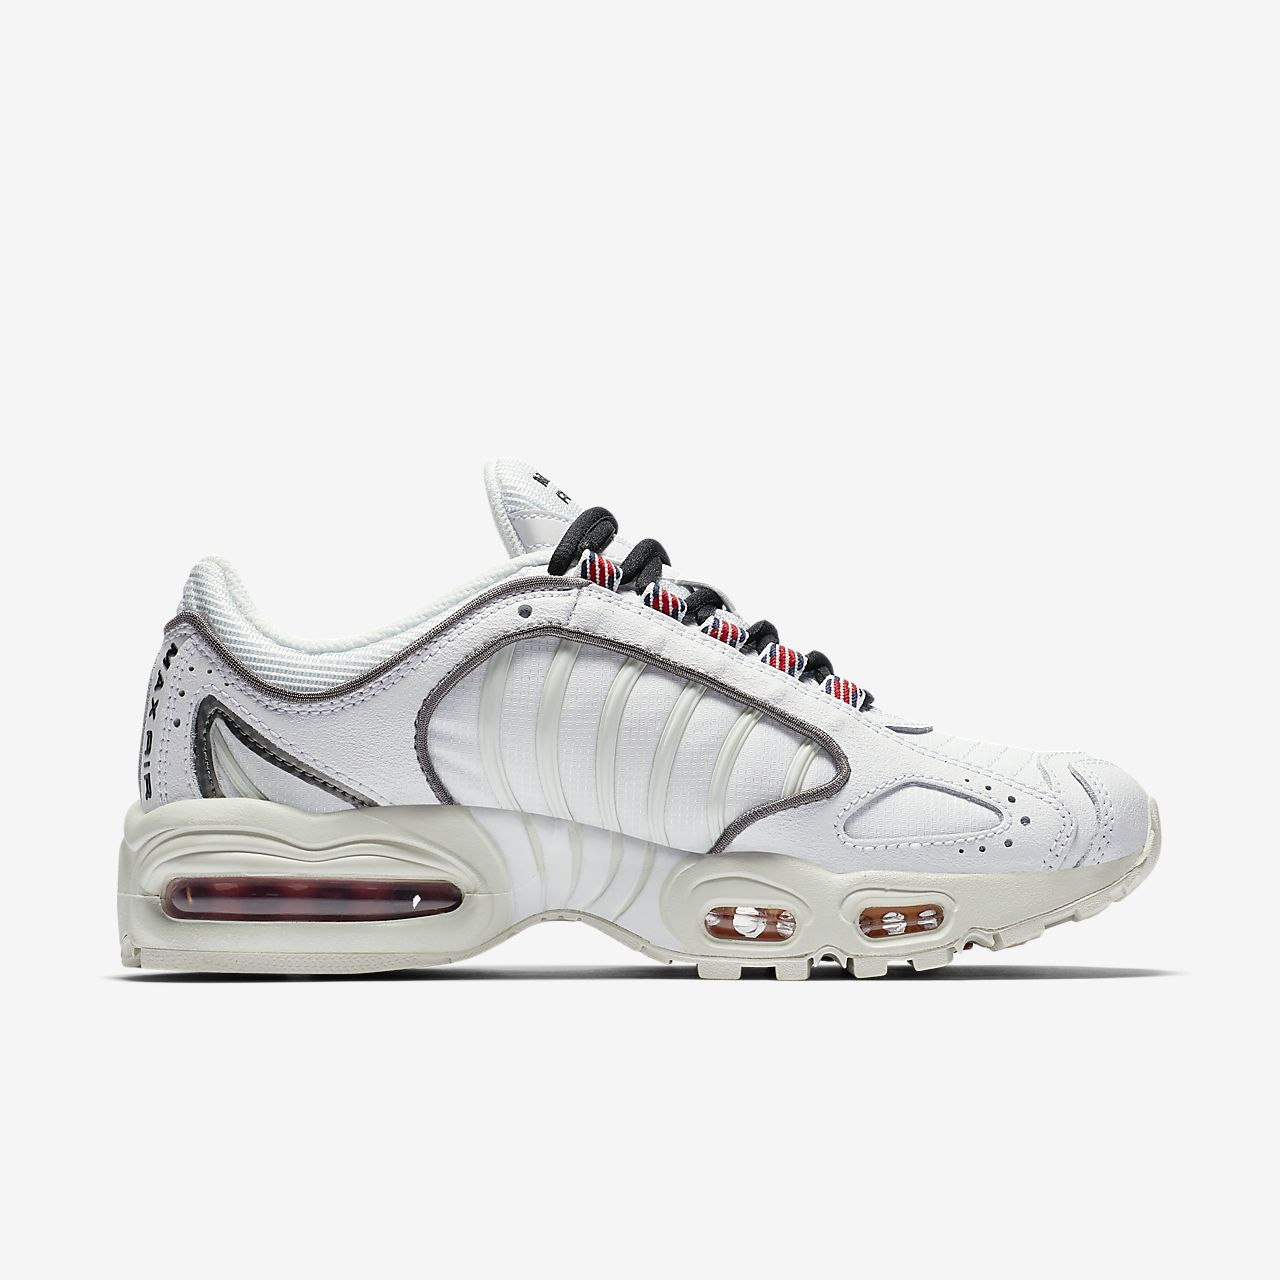 Chaussure Nike Air Max Tailwind IV SE pour Femme